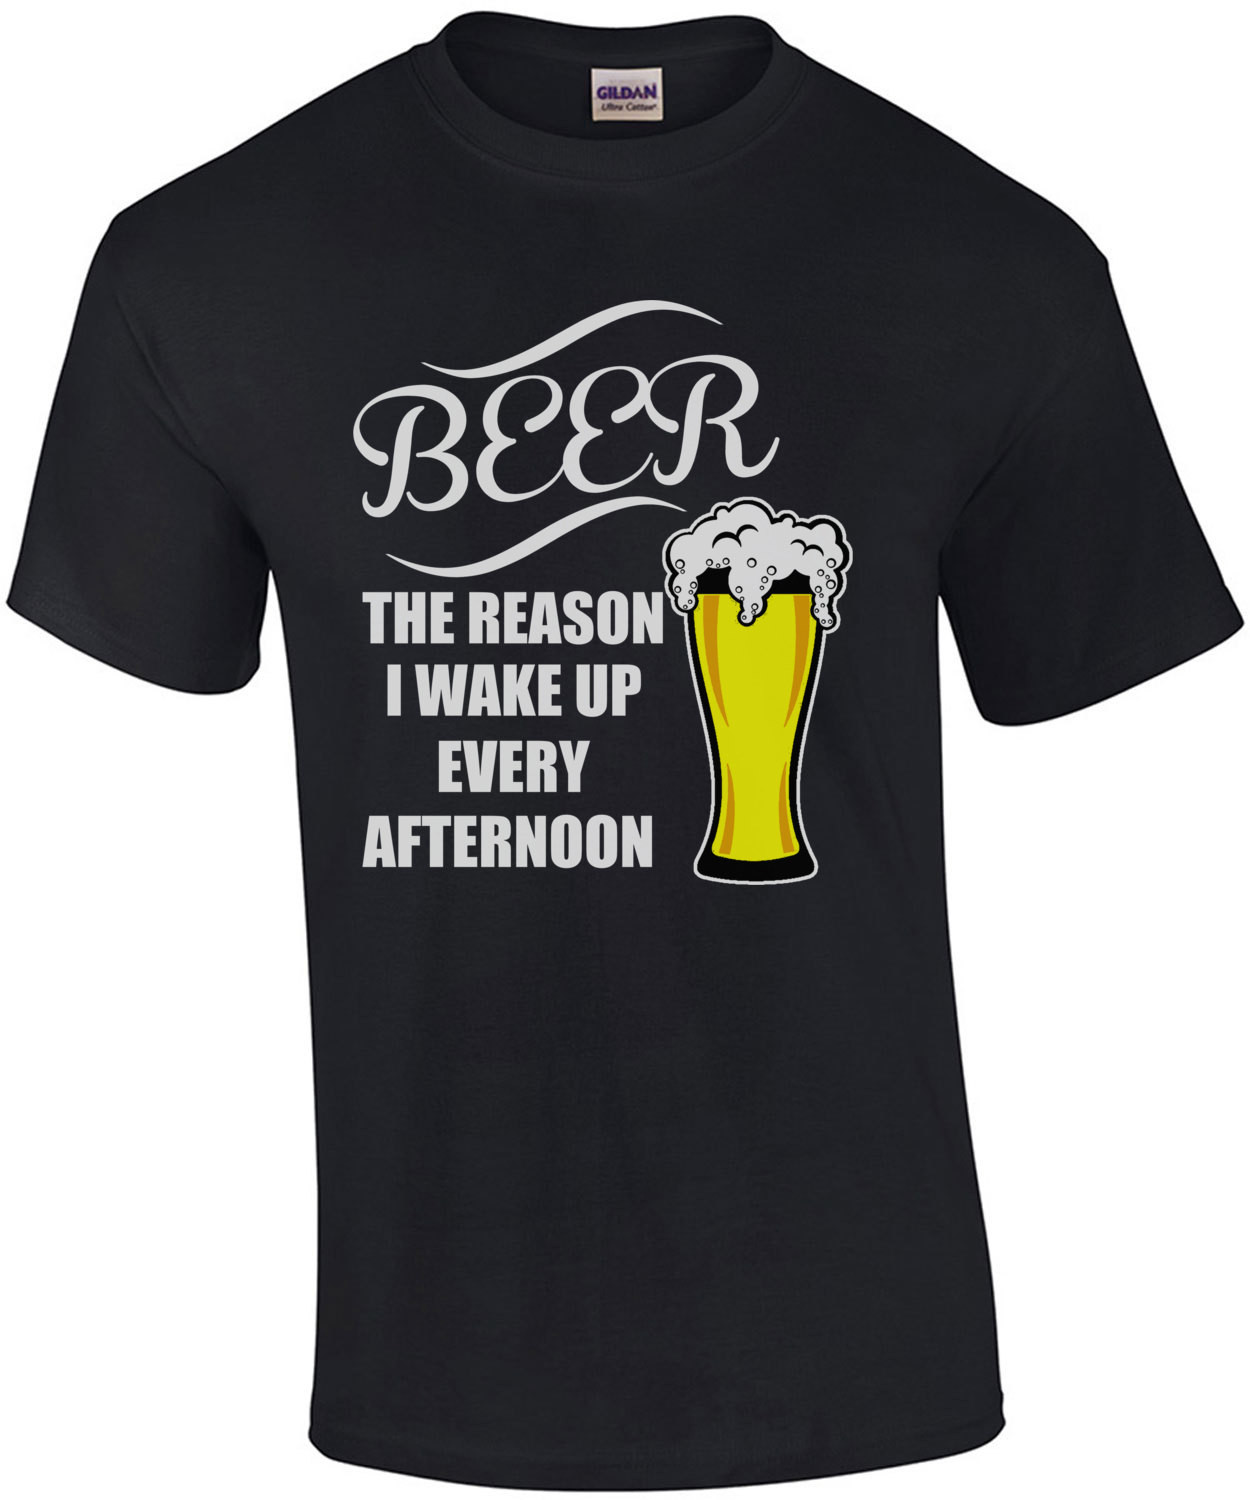 Beer It's The Reason I Wake Up Every Afternoon T-Shirt